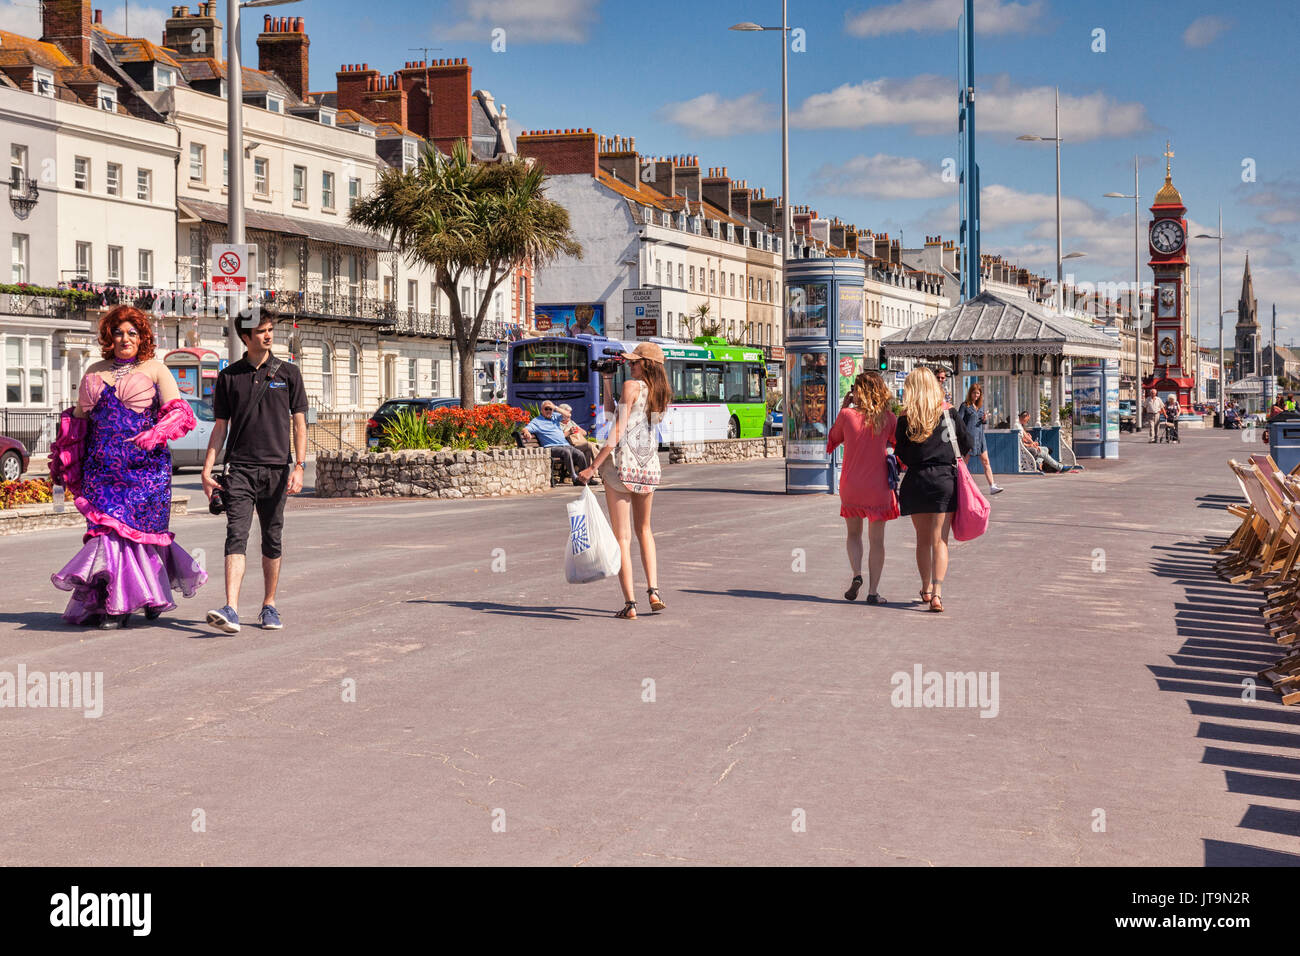 2 July 2017: Weymouth, Dorset, England, UK - Some of the sights of Weymouth Promenade, including a pantomime dame, some pretty girls and the famous Ju - Stock Image